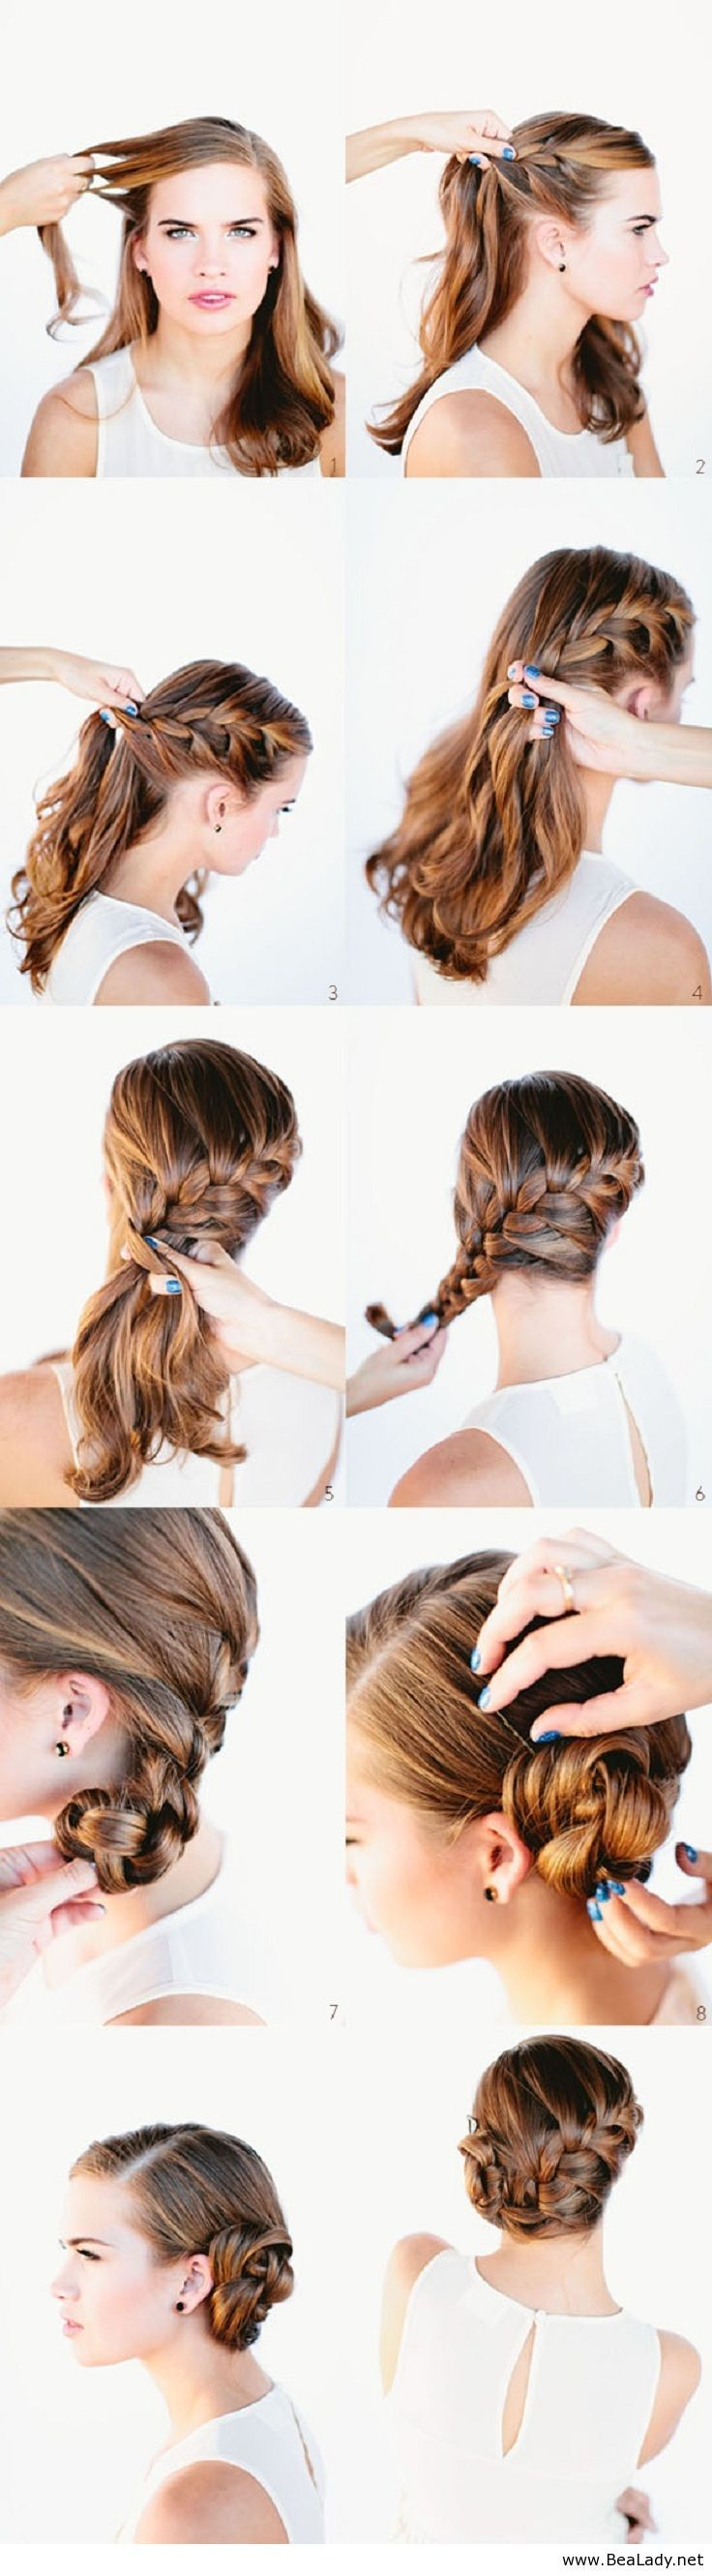 11 Lovely Hairstyle Tutorials - BeaLady.net